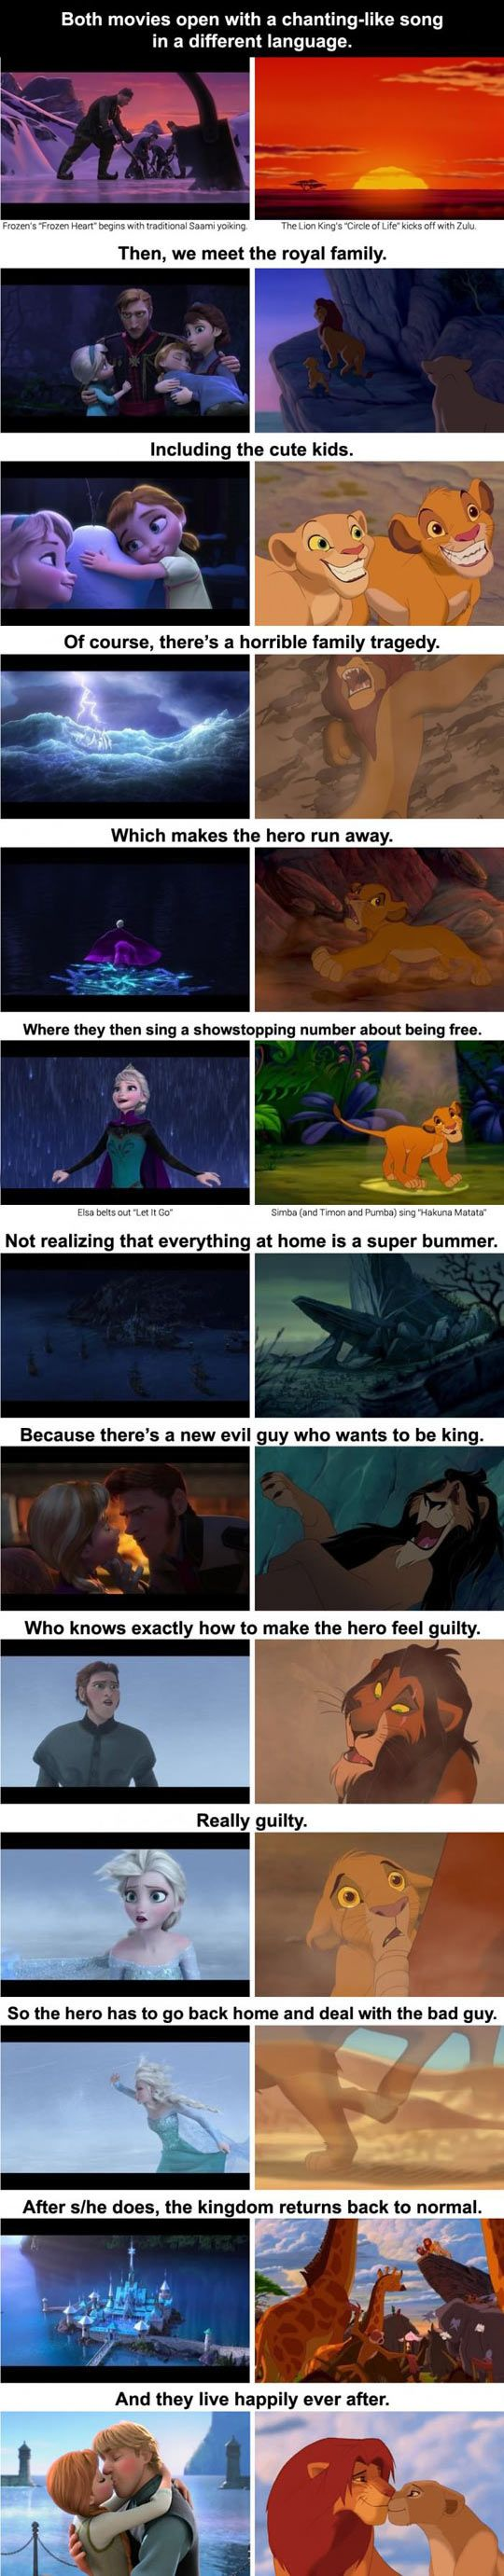 Apparently Frozen And The Lion King Are The Same Movie